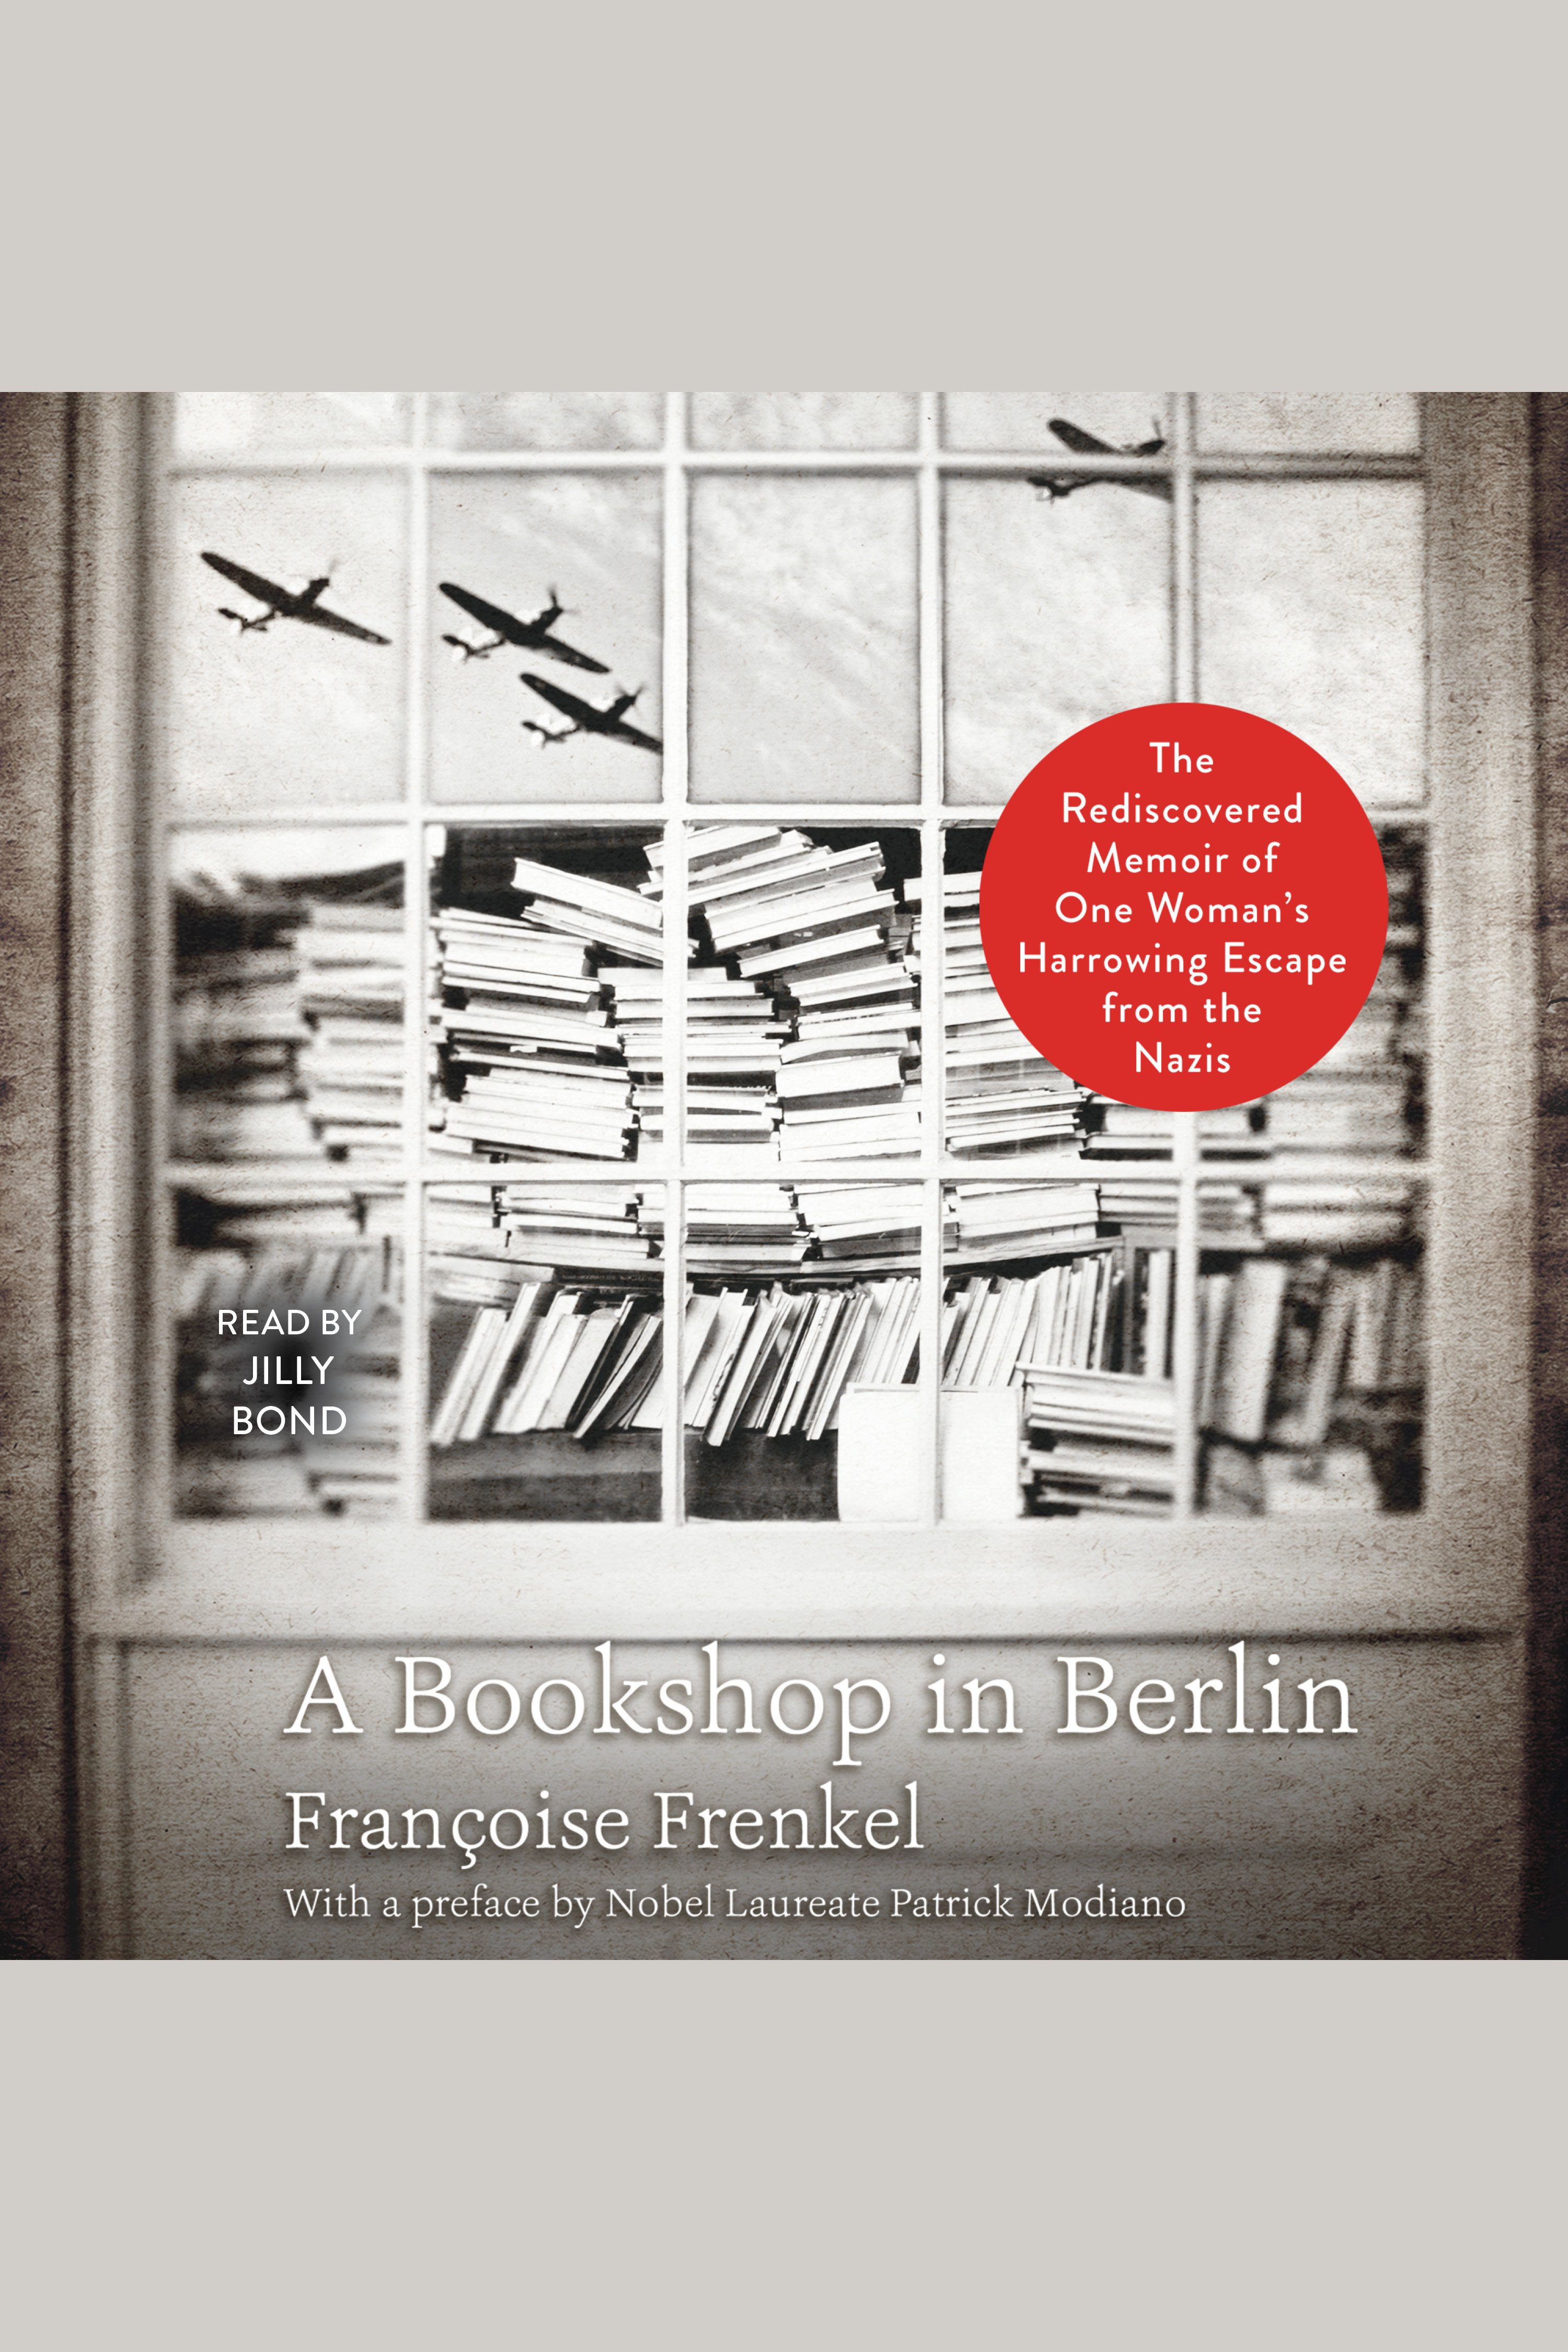 Bookshop in Berlin, A [electronic resource] : The Rediscovered Memoir of One Woman's Harrowing Escape from the Nazis